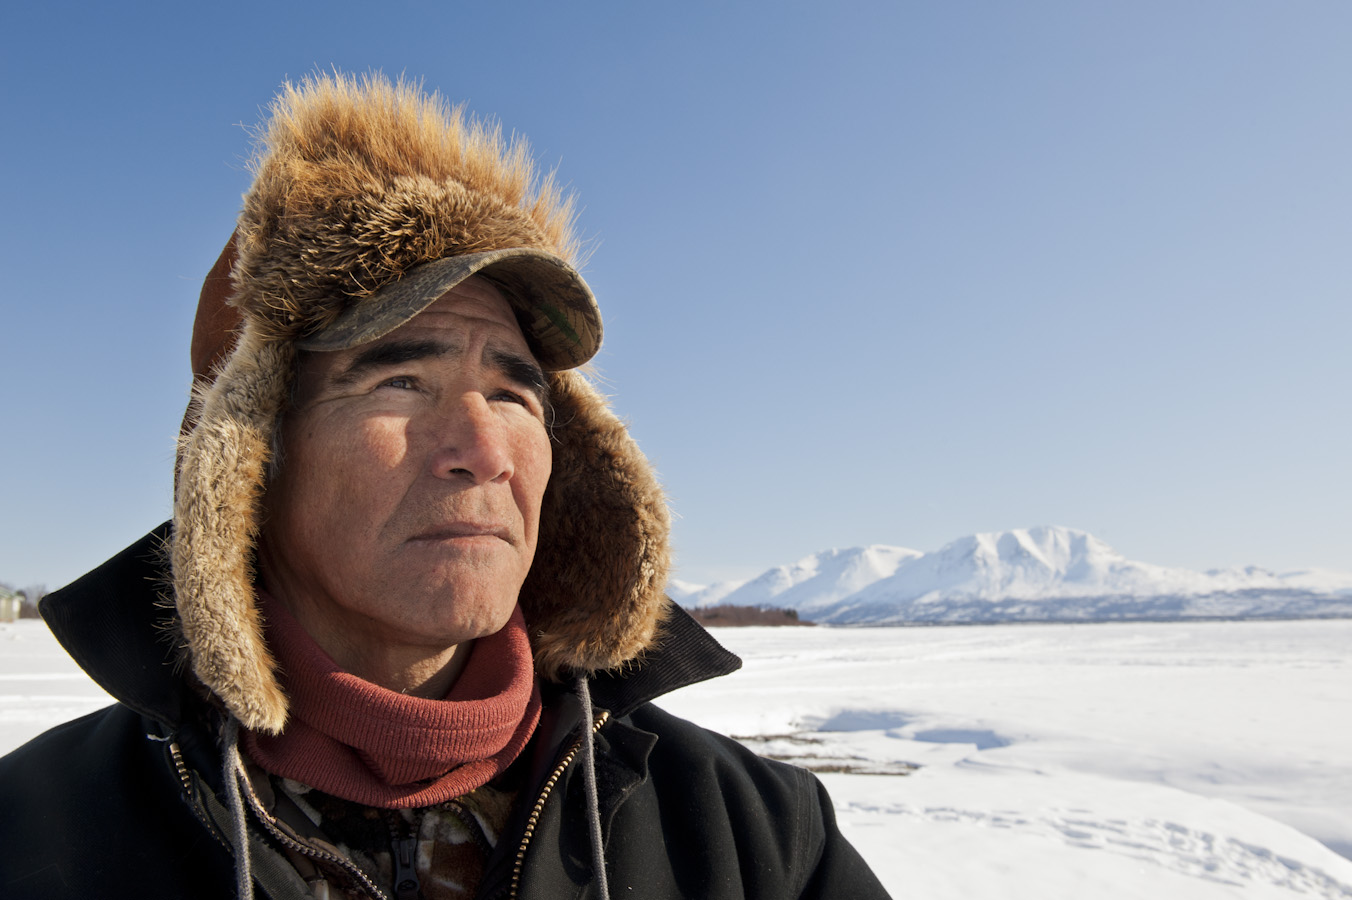 From  Where Water Is Gold: Life and Livelihood in Alaska's Bristol Bay  by Carl Johnson